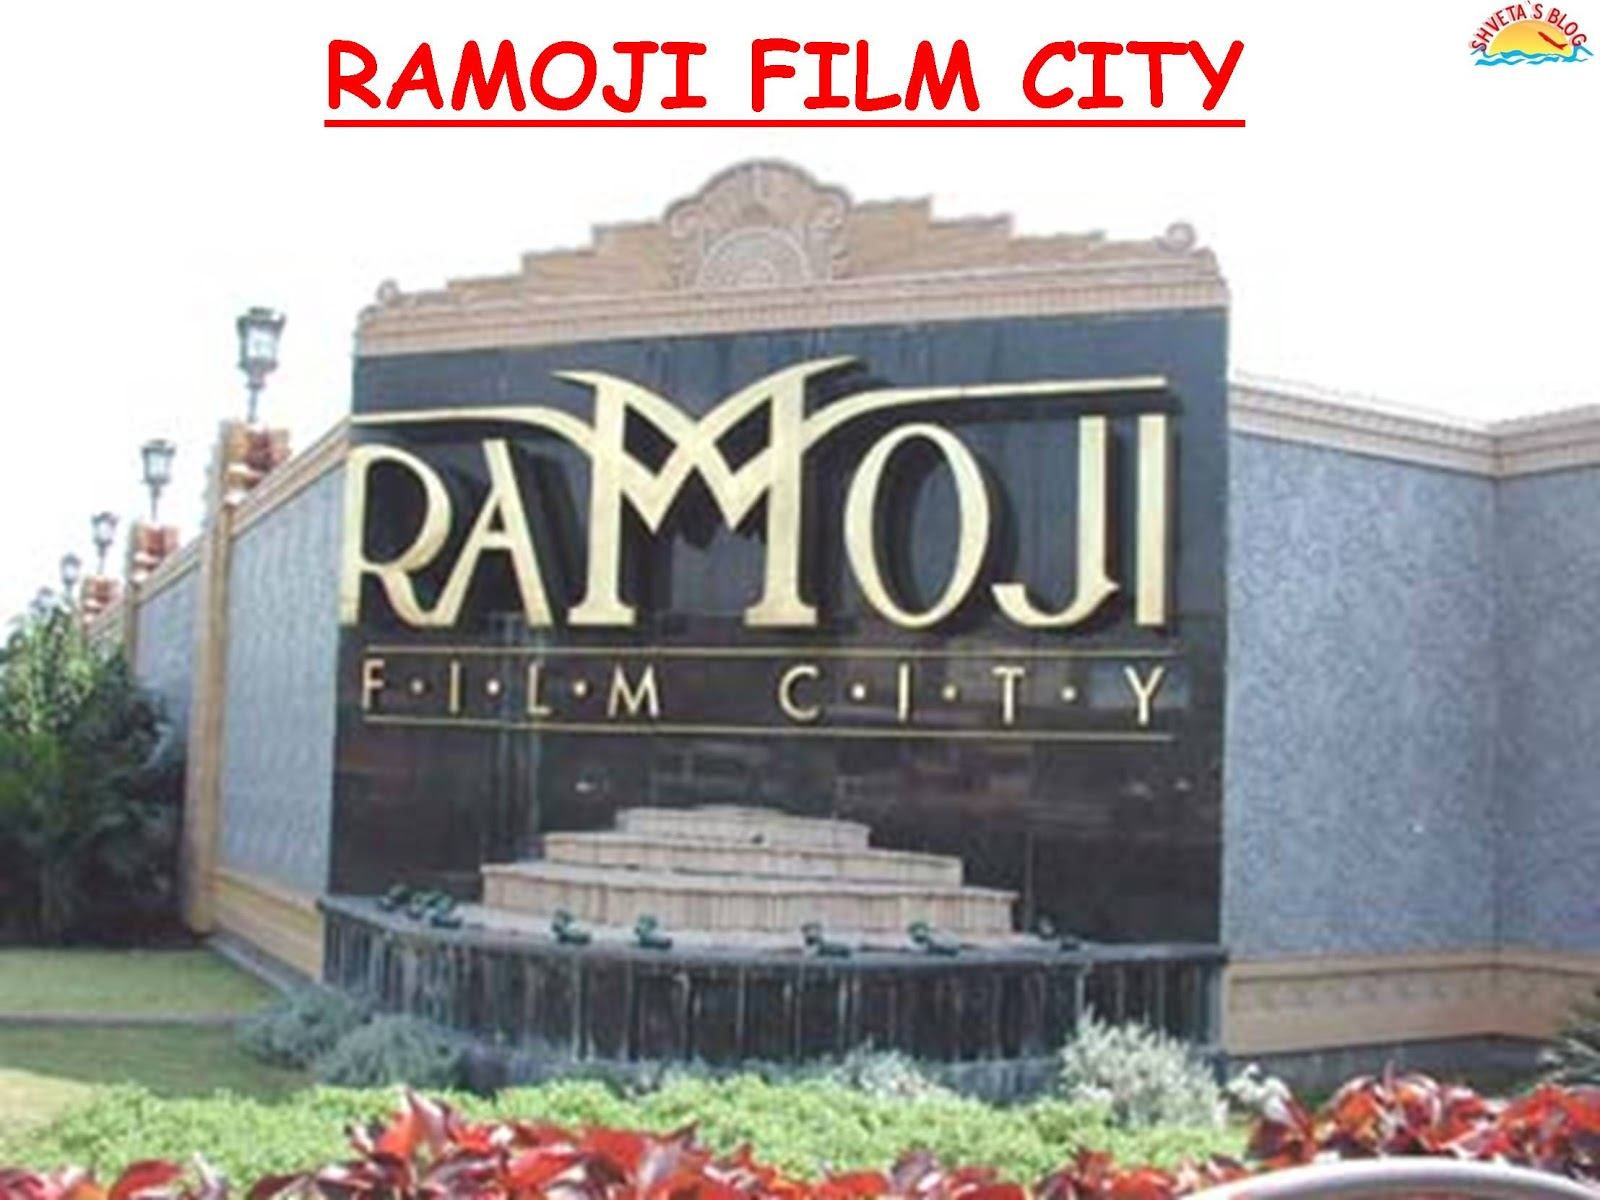 ramoji film city india s first integrated Overview located on the outskirts of hyderabad, about 20 kilometres away from its centre, is the ramoji film city it is known as the biggest integrated film centre in the world.